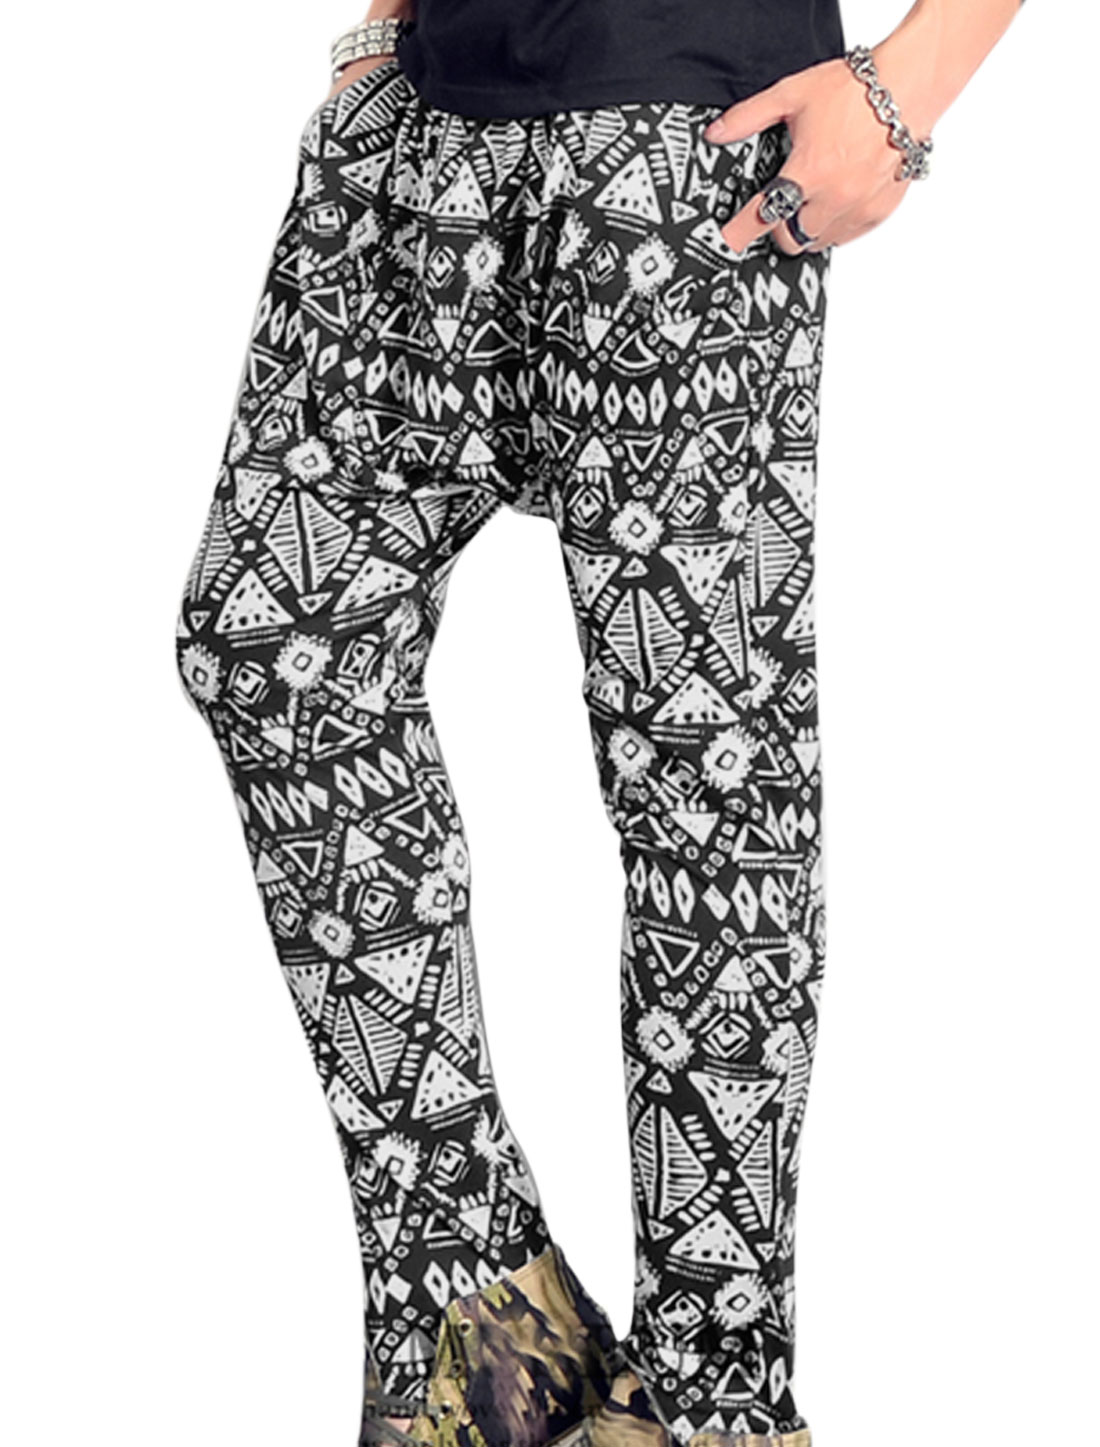 Men Elastic Drawstring Waist Novelty Prints Casual Cropped Pants White Black W28